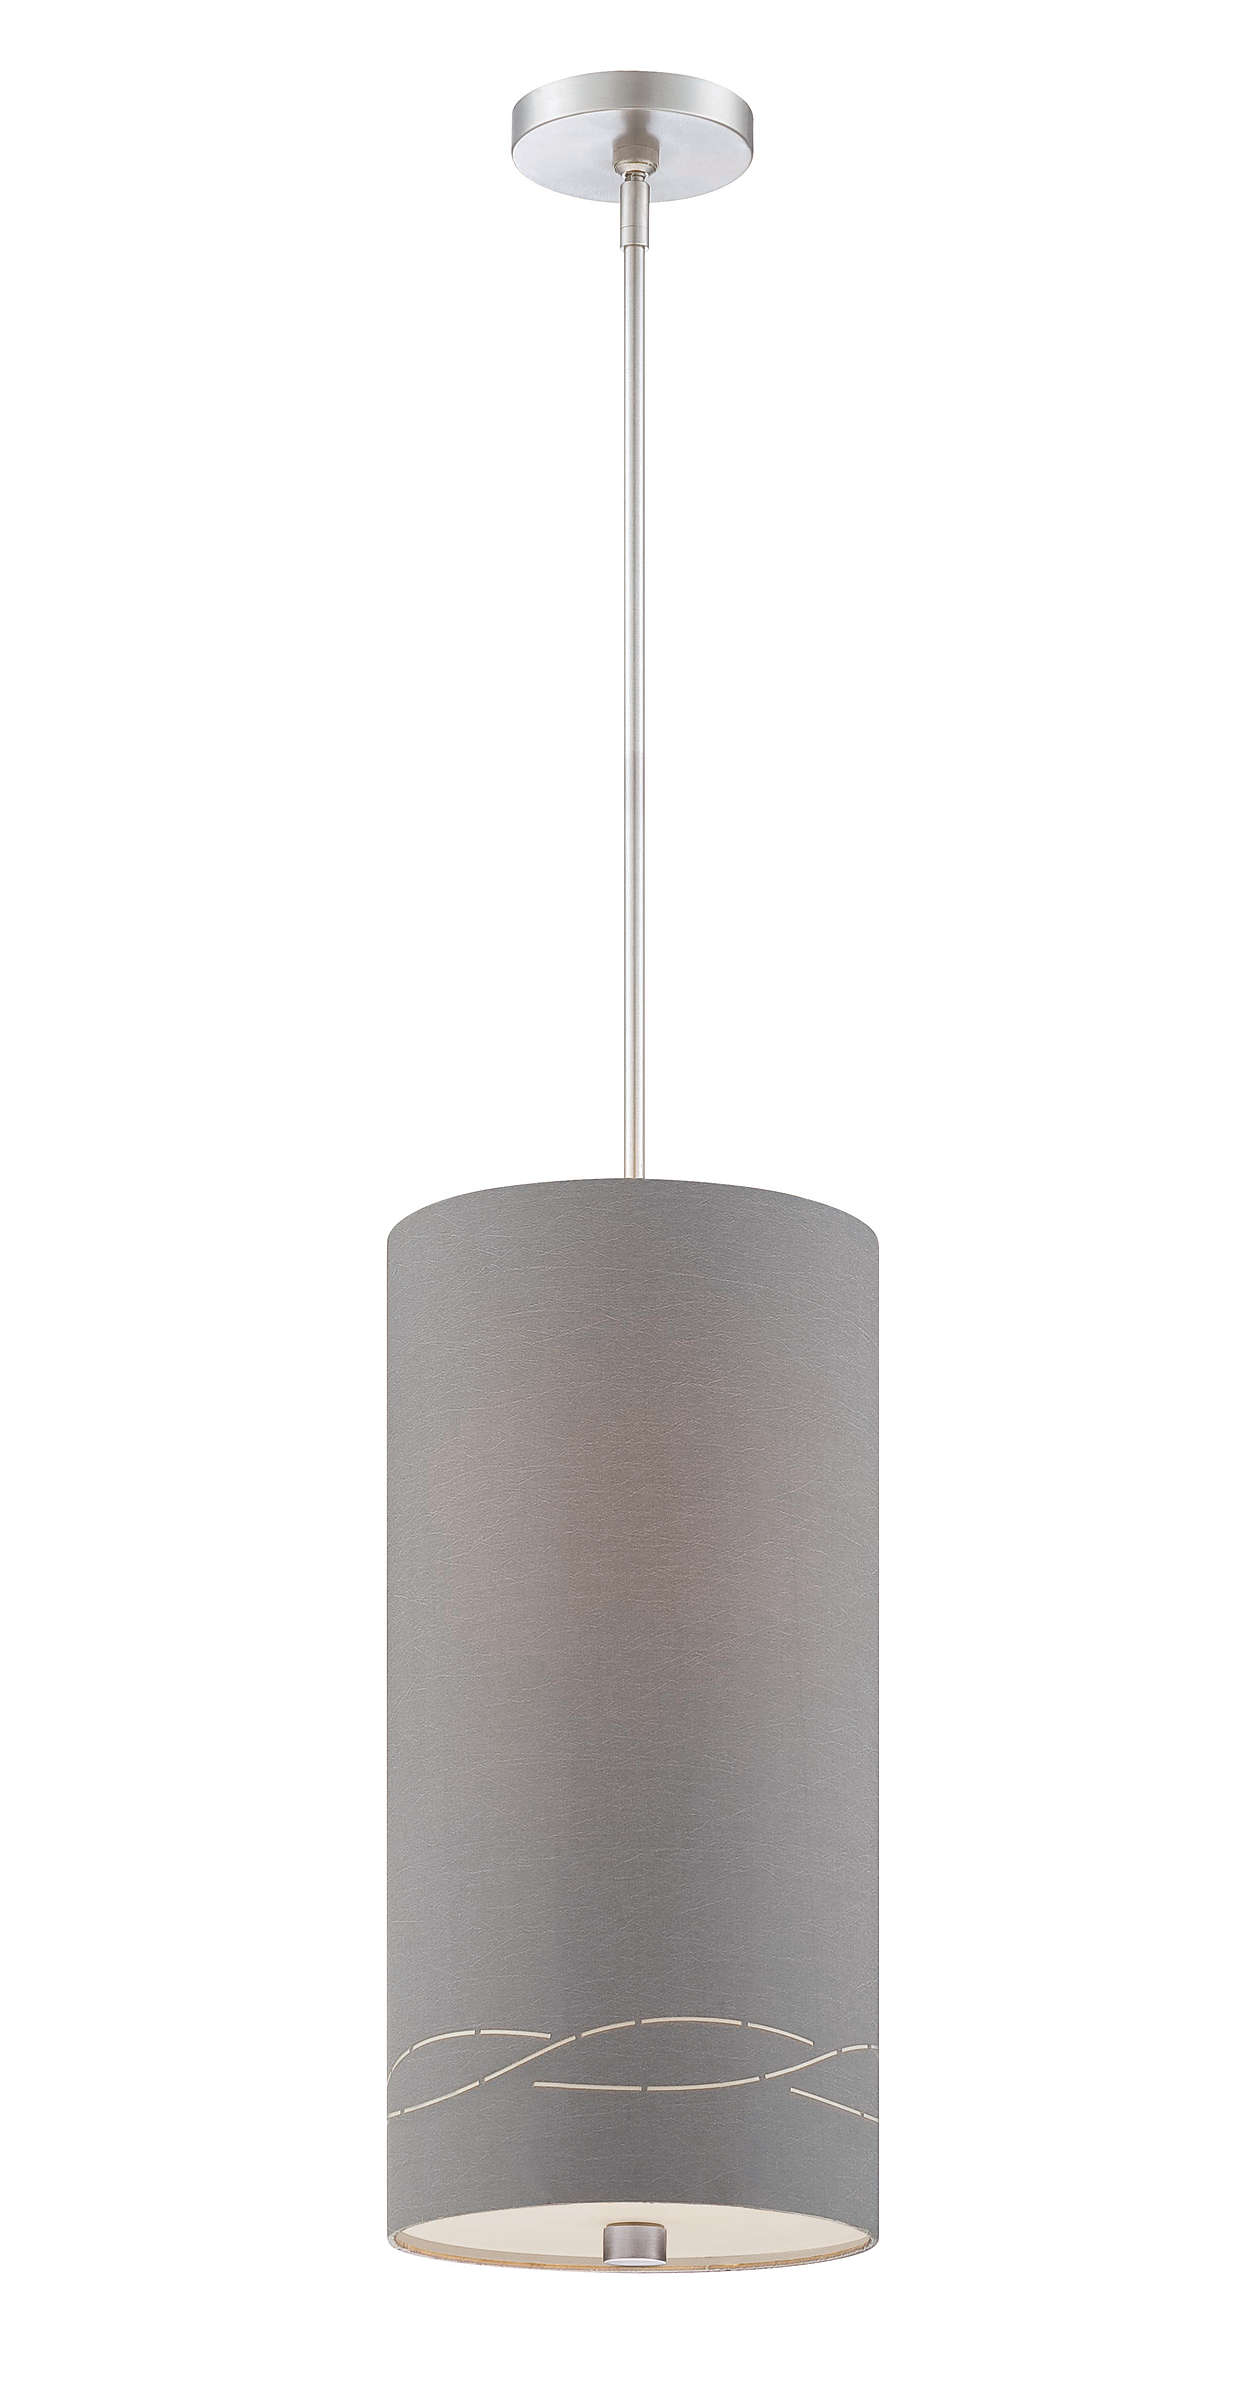 Silver Laser 1-light pendant, Satin Nickel finish